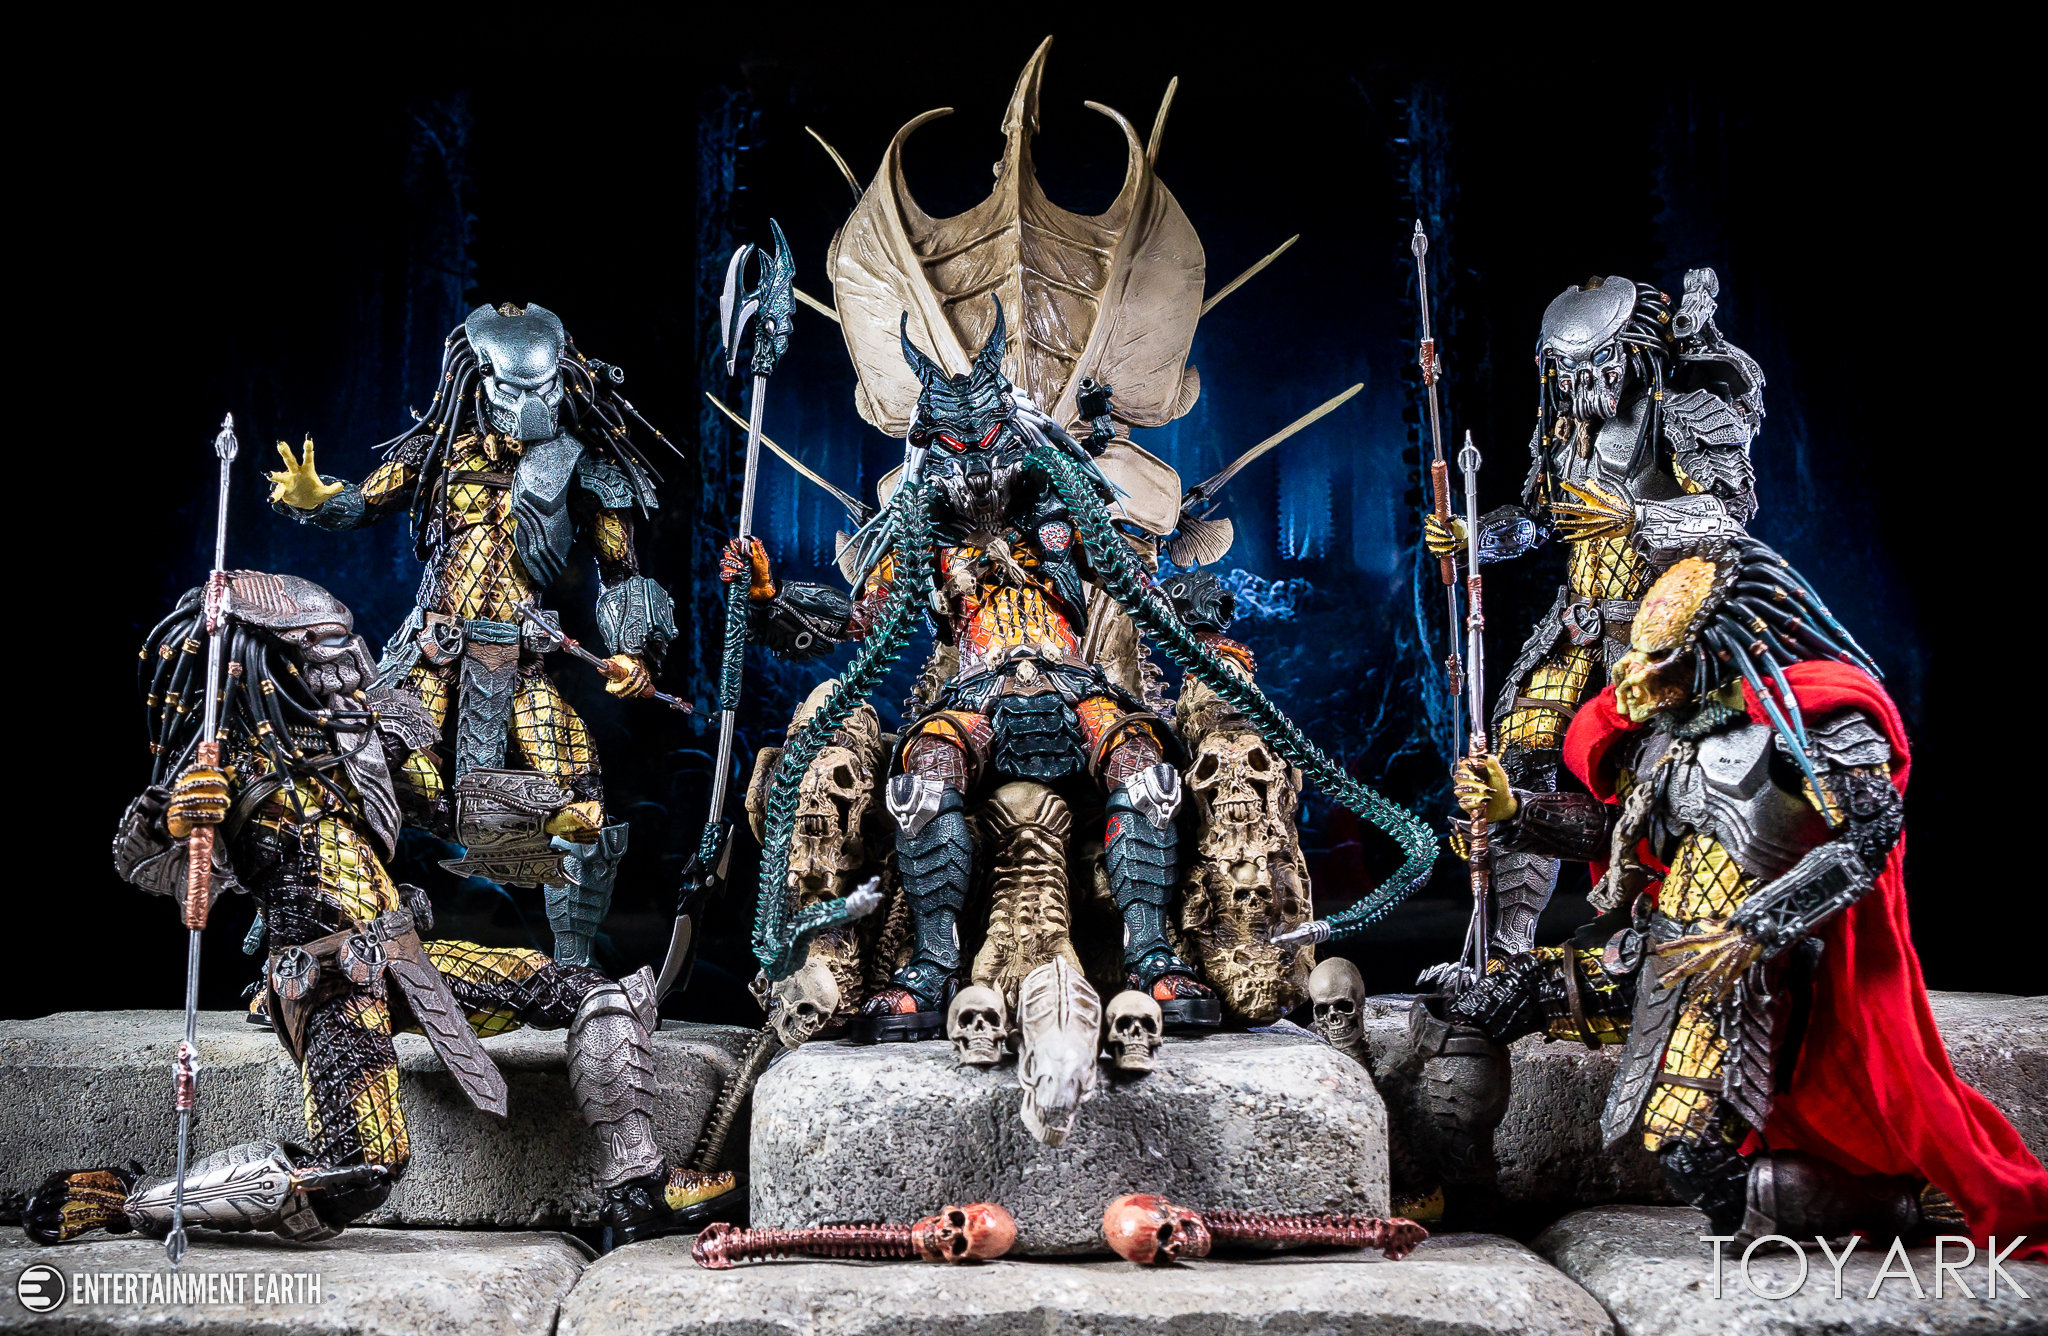 https://news.toyark.com/wp-content/uploads/sites/4/2018/05/NECA-Predator-Throne-043.jpg